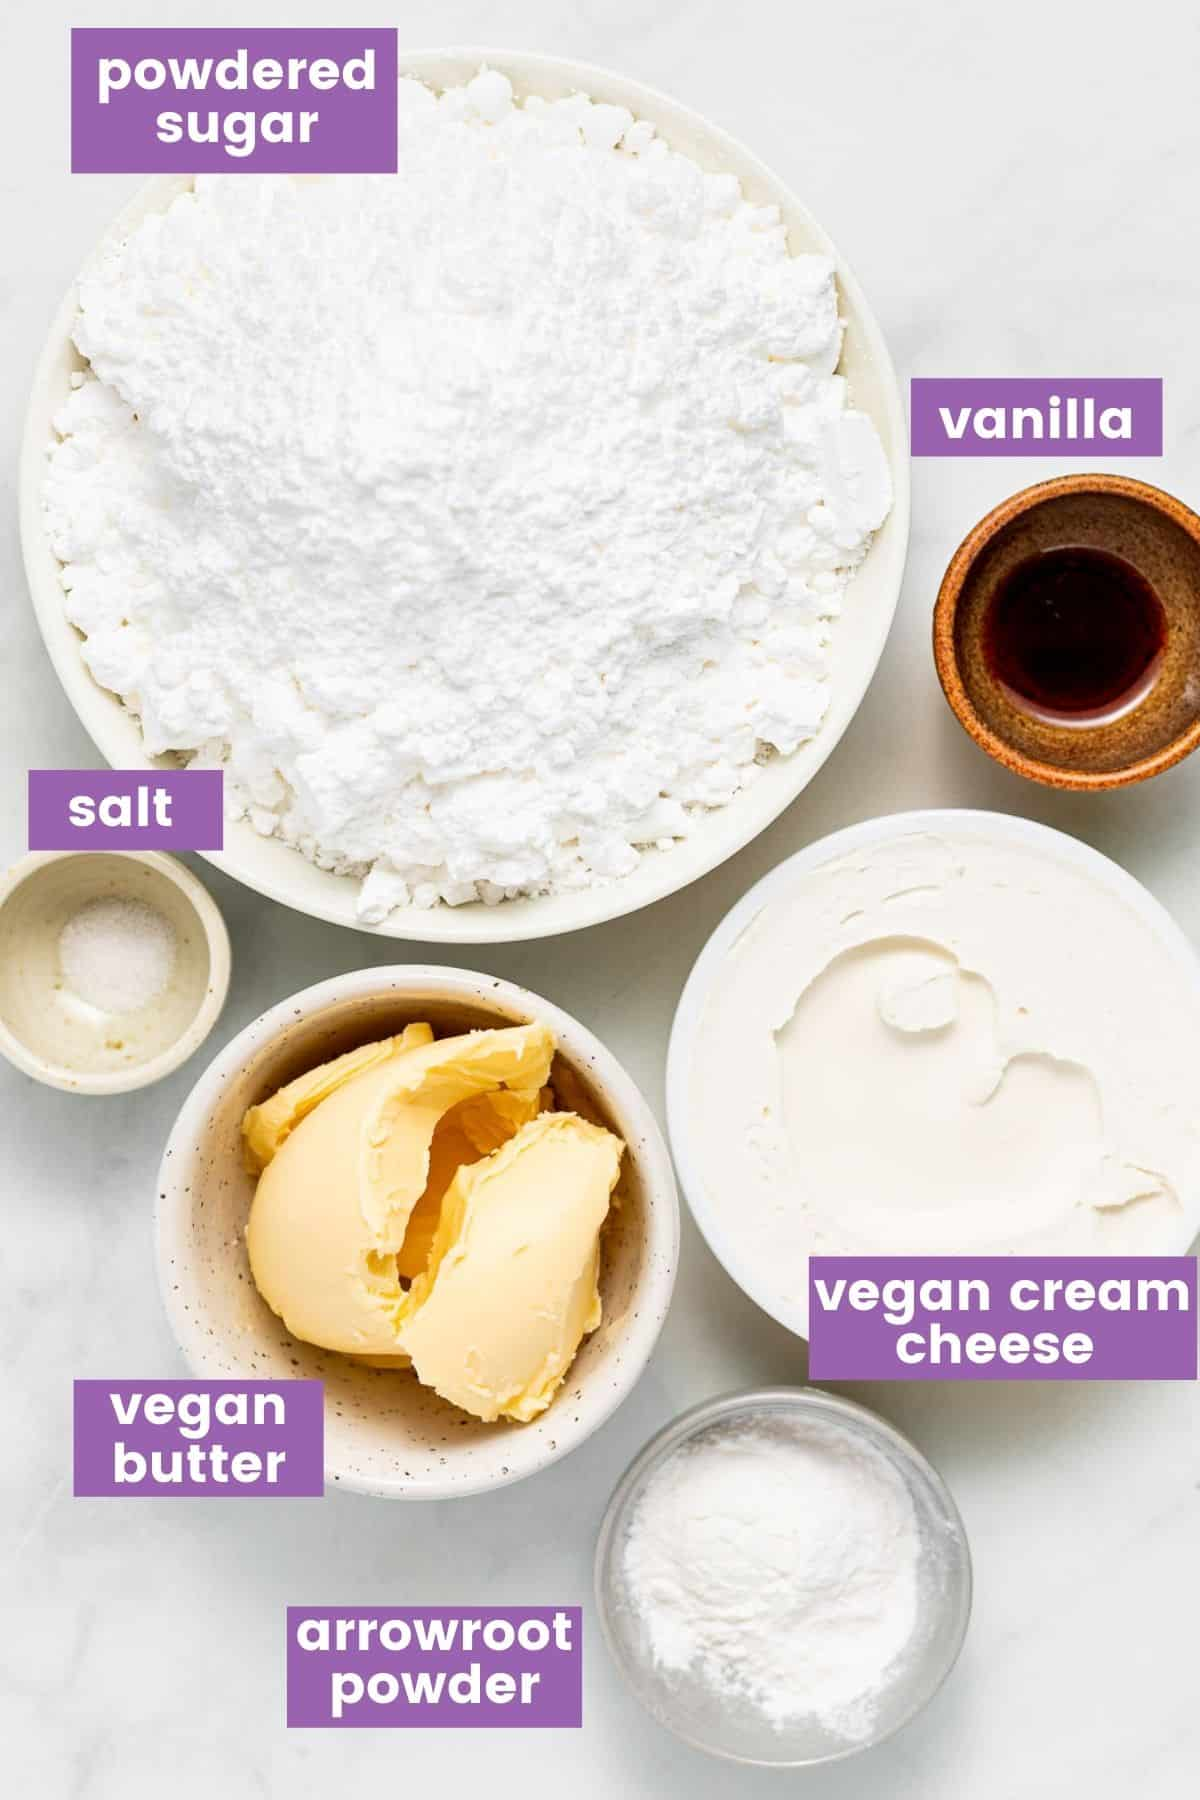 ingredients for vegan cream cheese frosting as per written list.